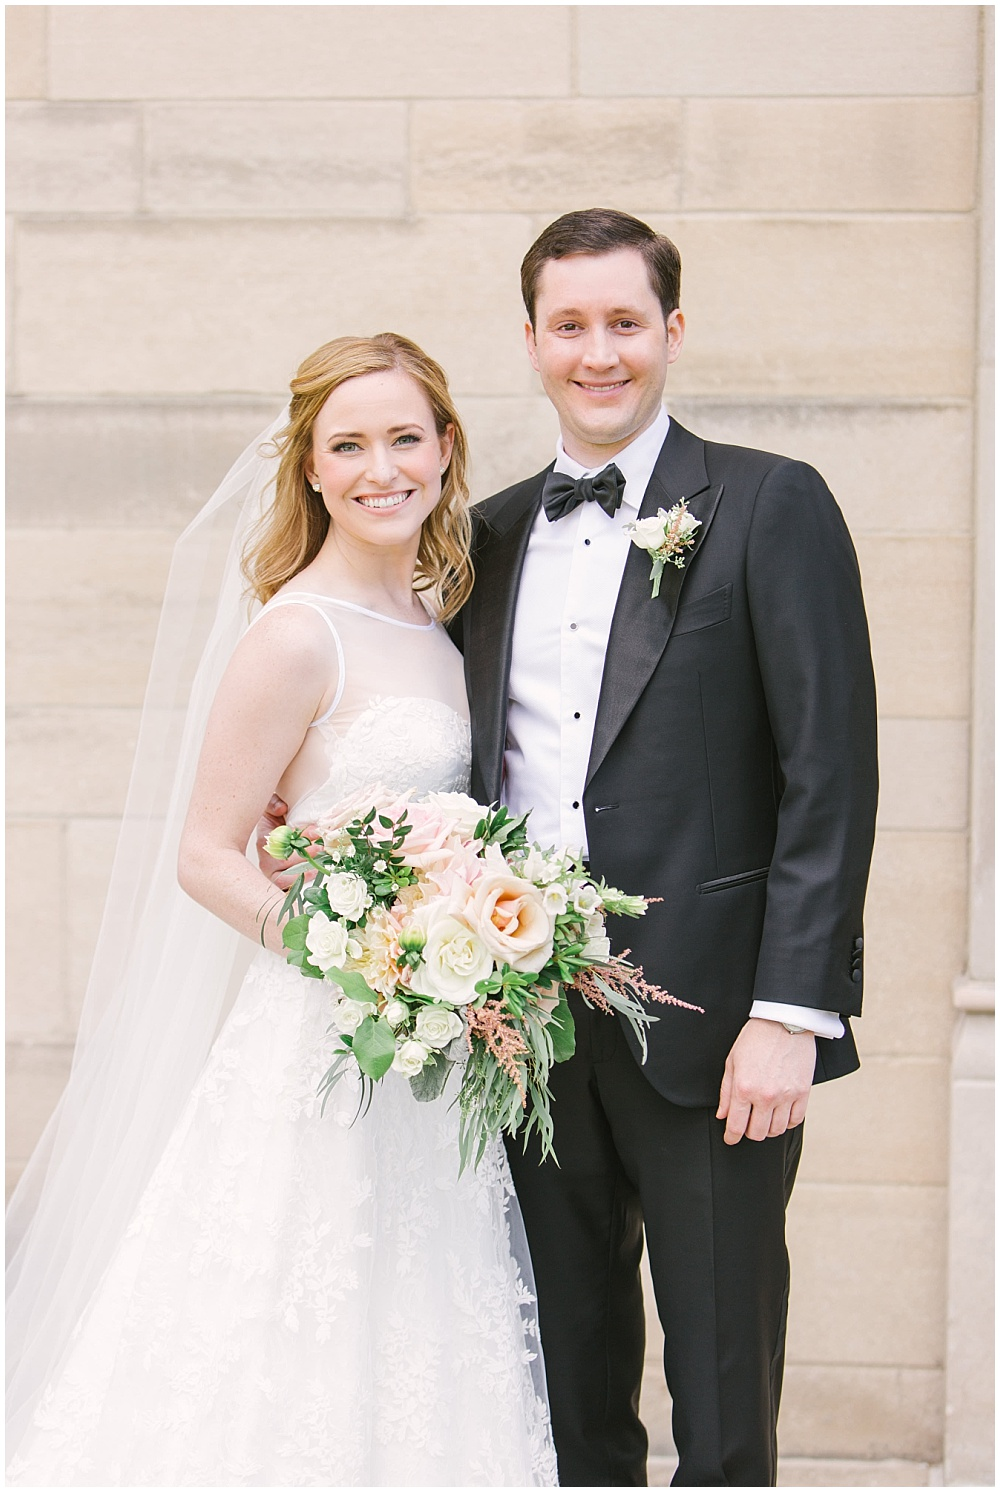 brida and groom portraits; white wedding dress; blush and white bridal bouquet with greenery; Navy + blush wedding; Scottish Rite Cathedral Indianapolis | Traci & Troy Photography and Jessica Dum Wedding Coordination